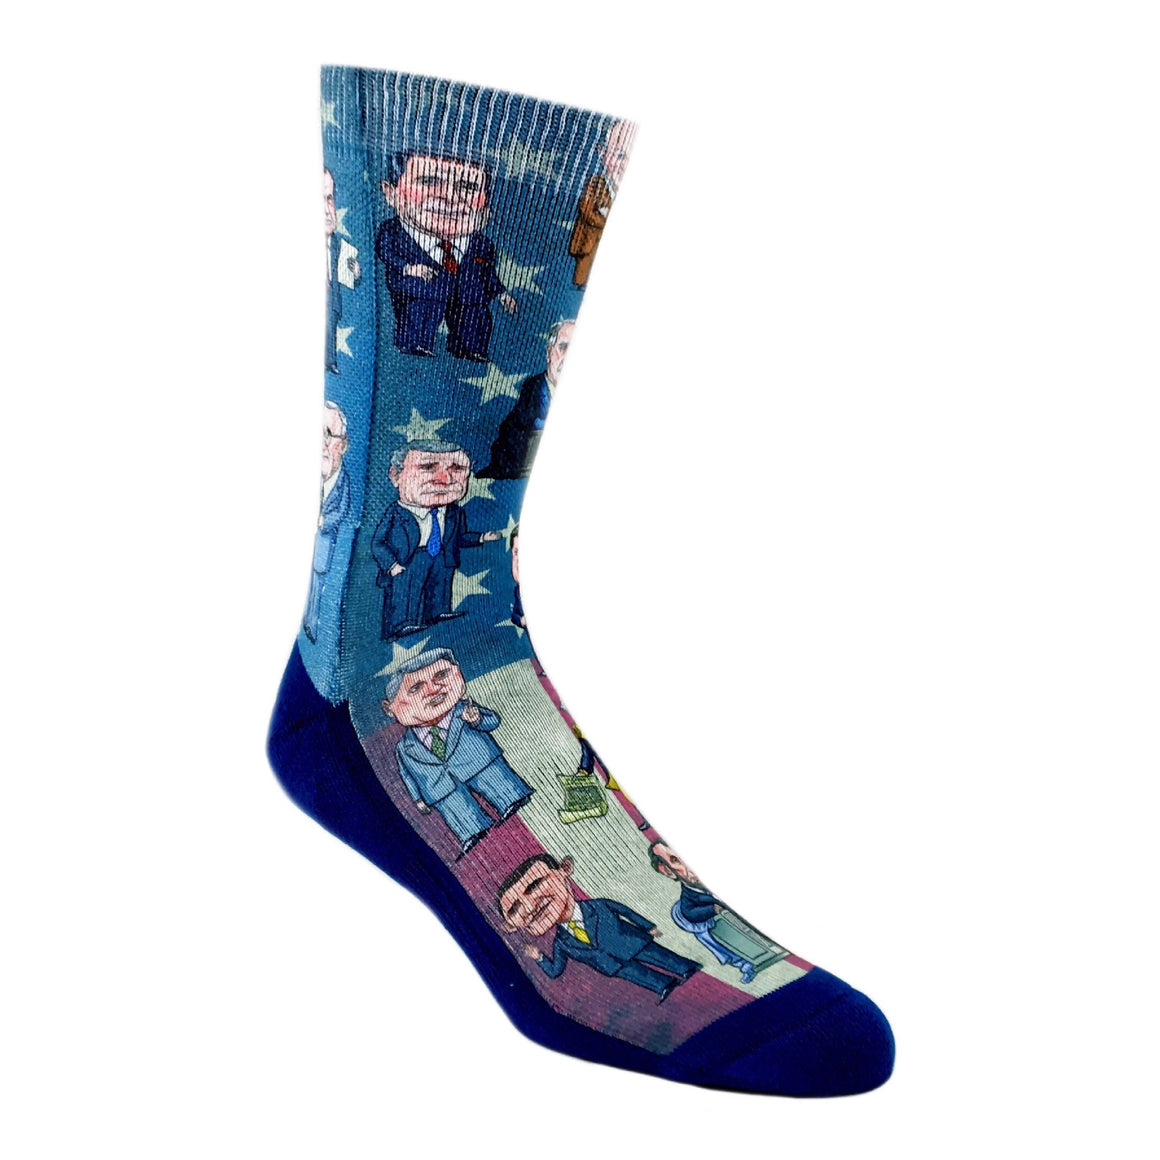 Past Presidents of The United States Printed Socks by Good Luck Sock - The Sock Spot